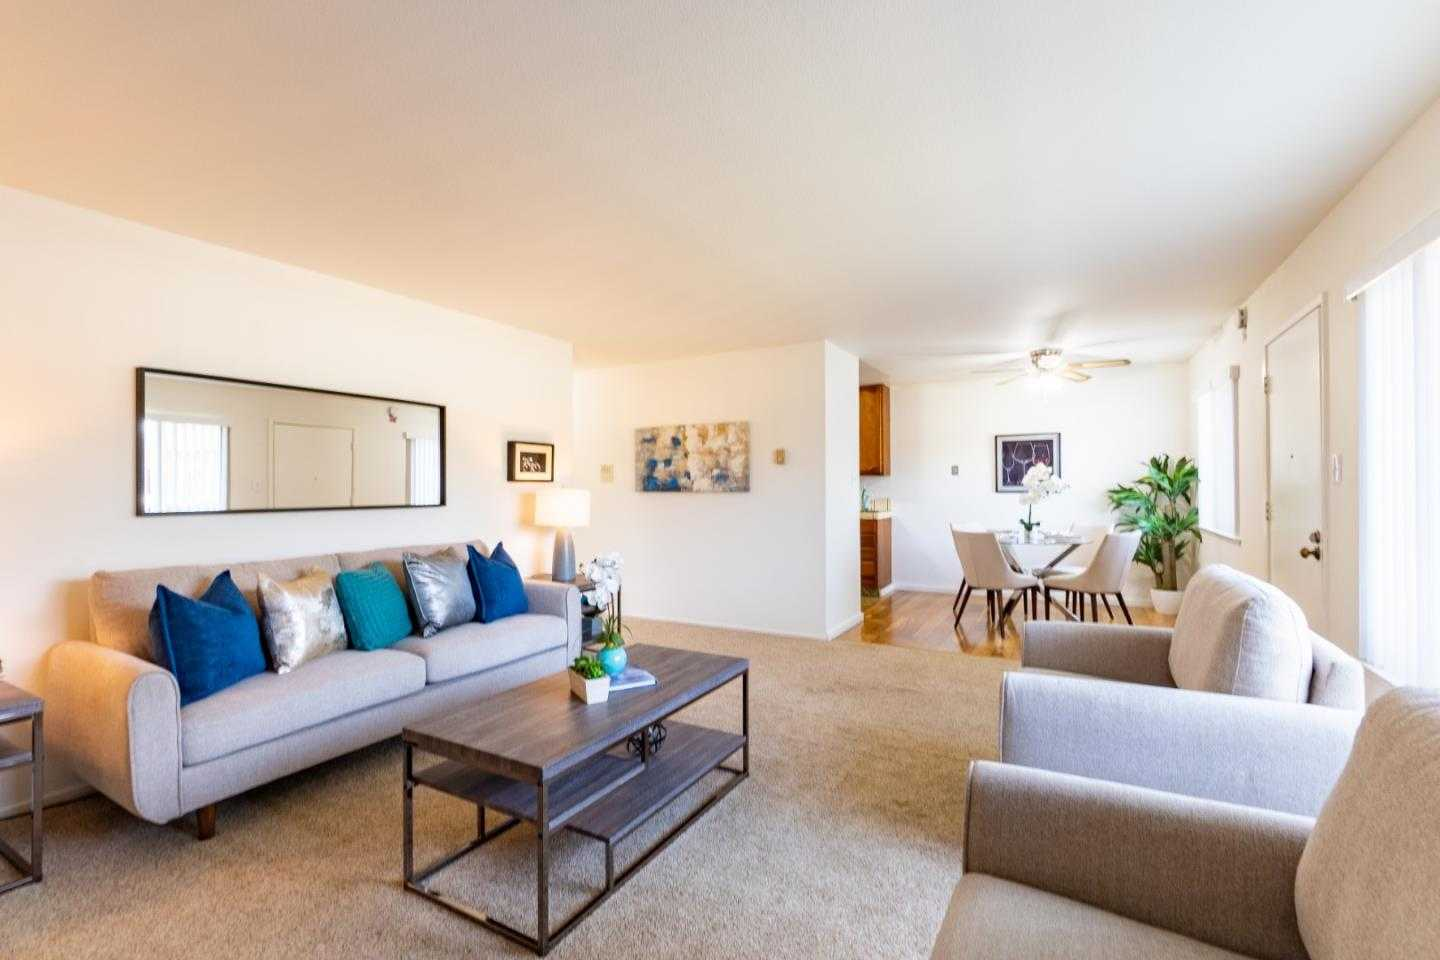 $675,000 - 2Br/2Ba -  for Sale in South San Francisco